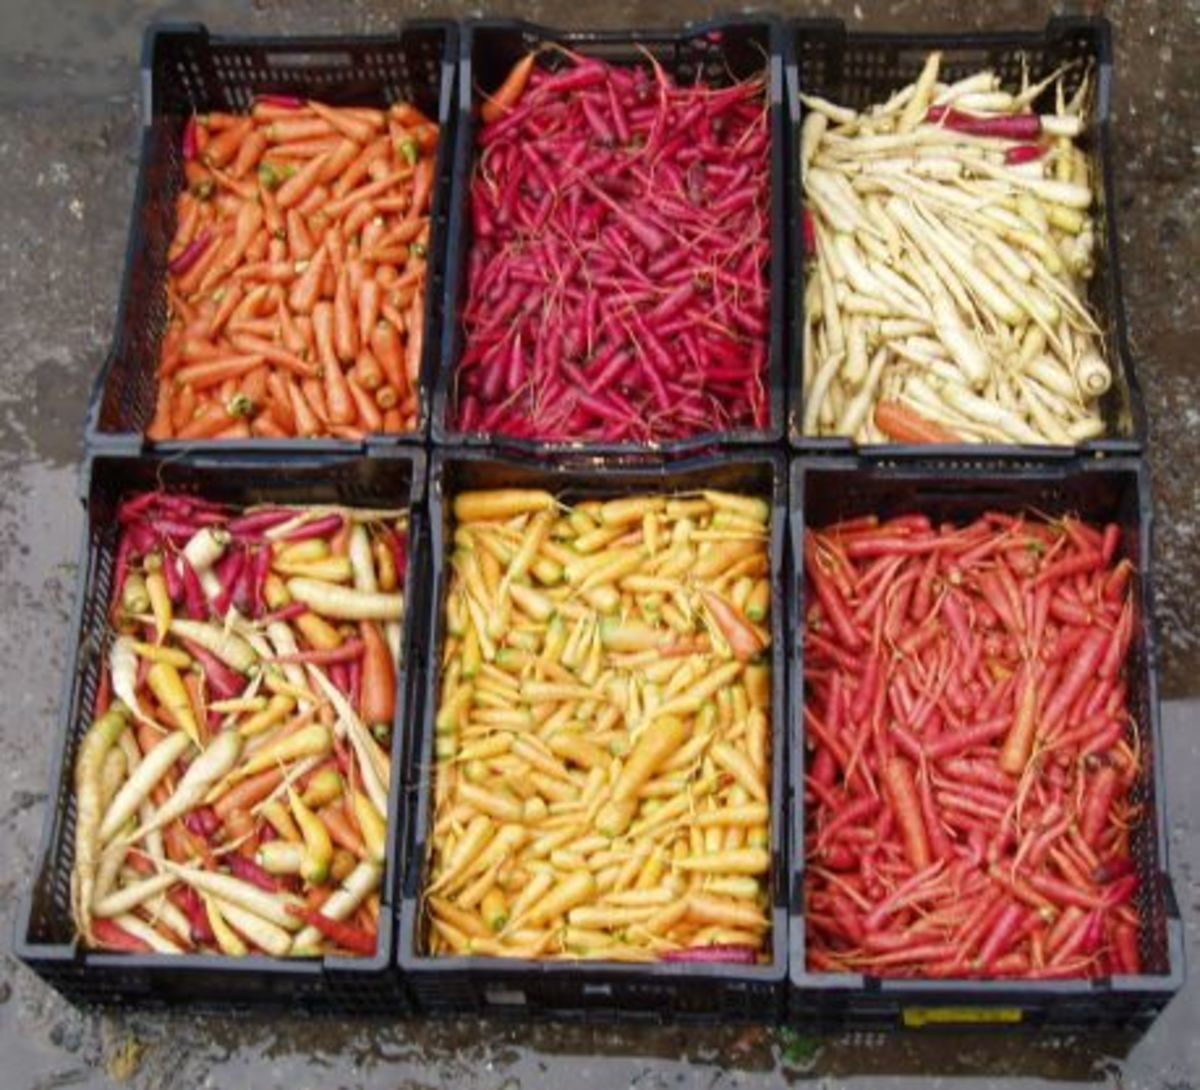 Miniature carrots in different colors